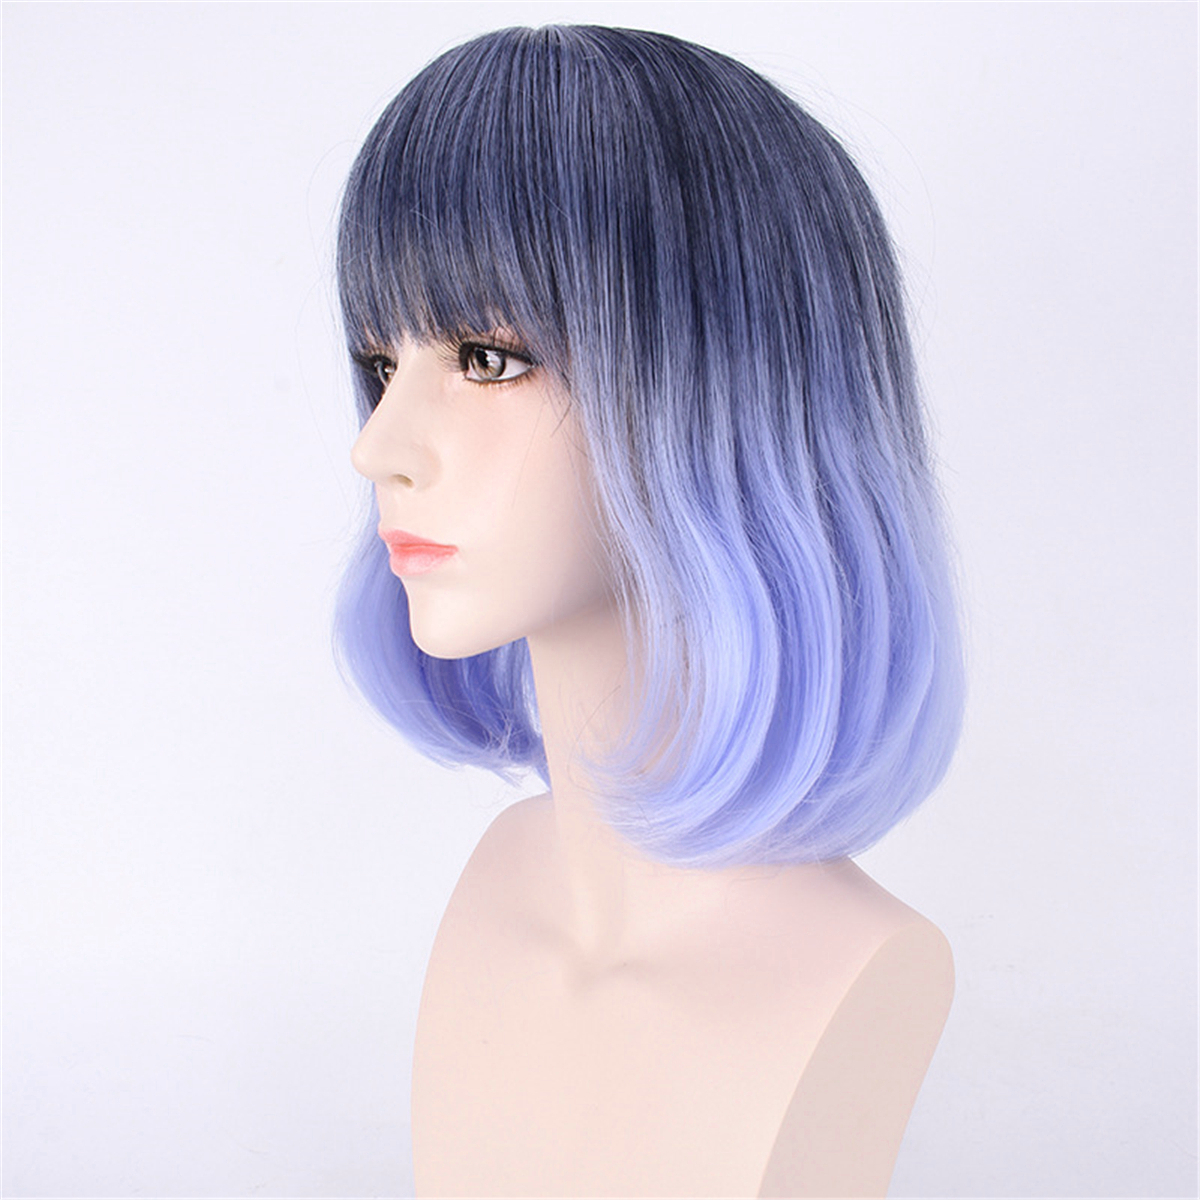 3540cm Blue Gradient Cosplay Wig Woman Short Curly Hair Anime Natural Role Play Capless